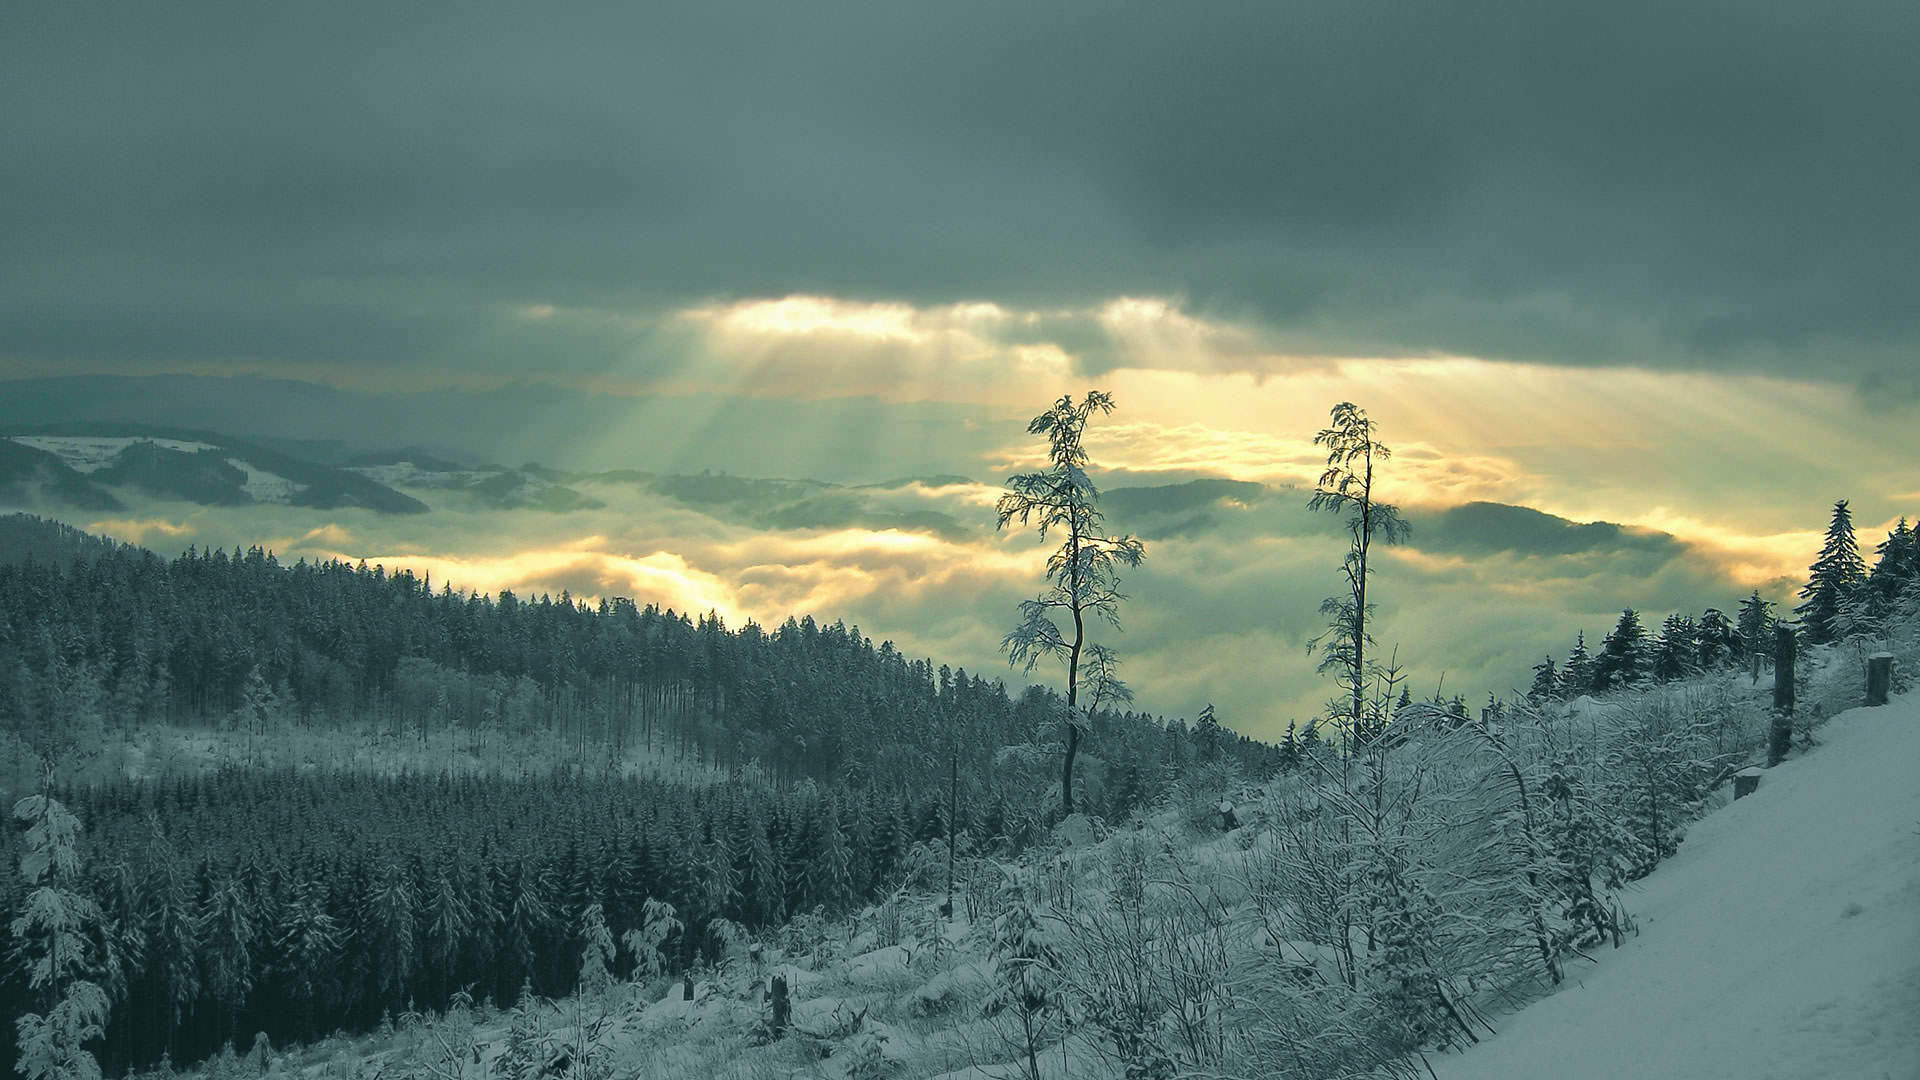 winter nature best wallpapers ever - photo #3